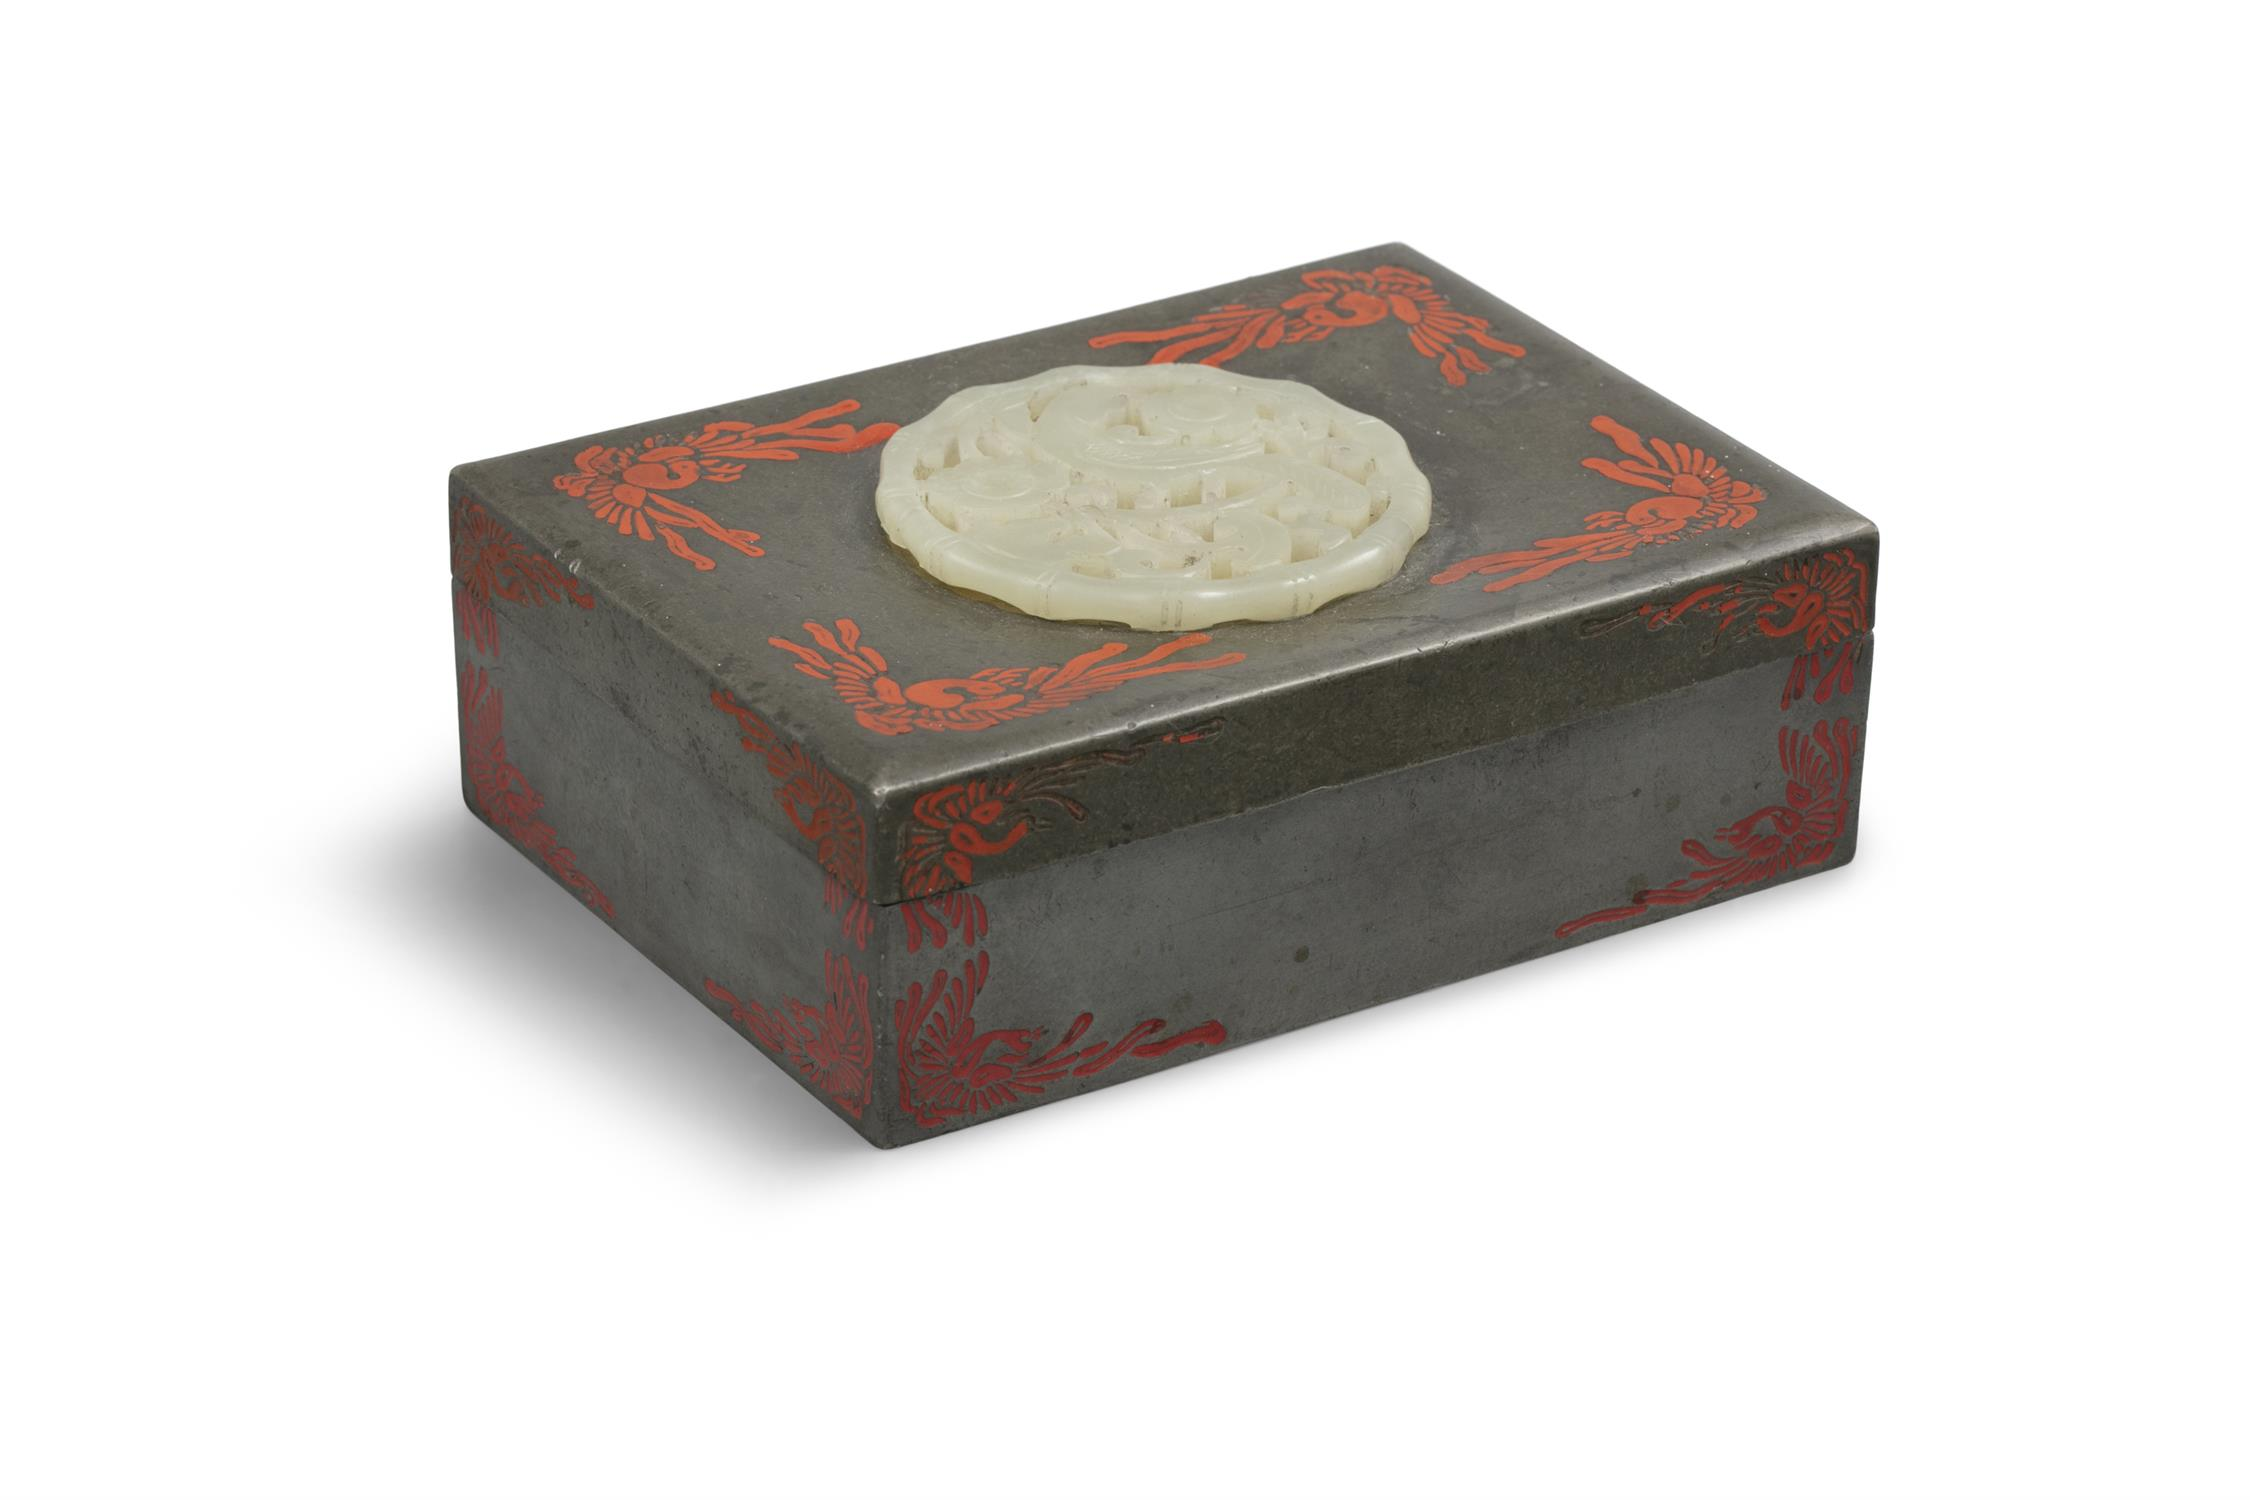 A PARCEL LACQUERED PEWTER LIDDED BOX SET WITH A JADE PIECE BY YAMANAKA & CO The box made in Japan, - Image 12 of 15